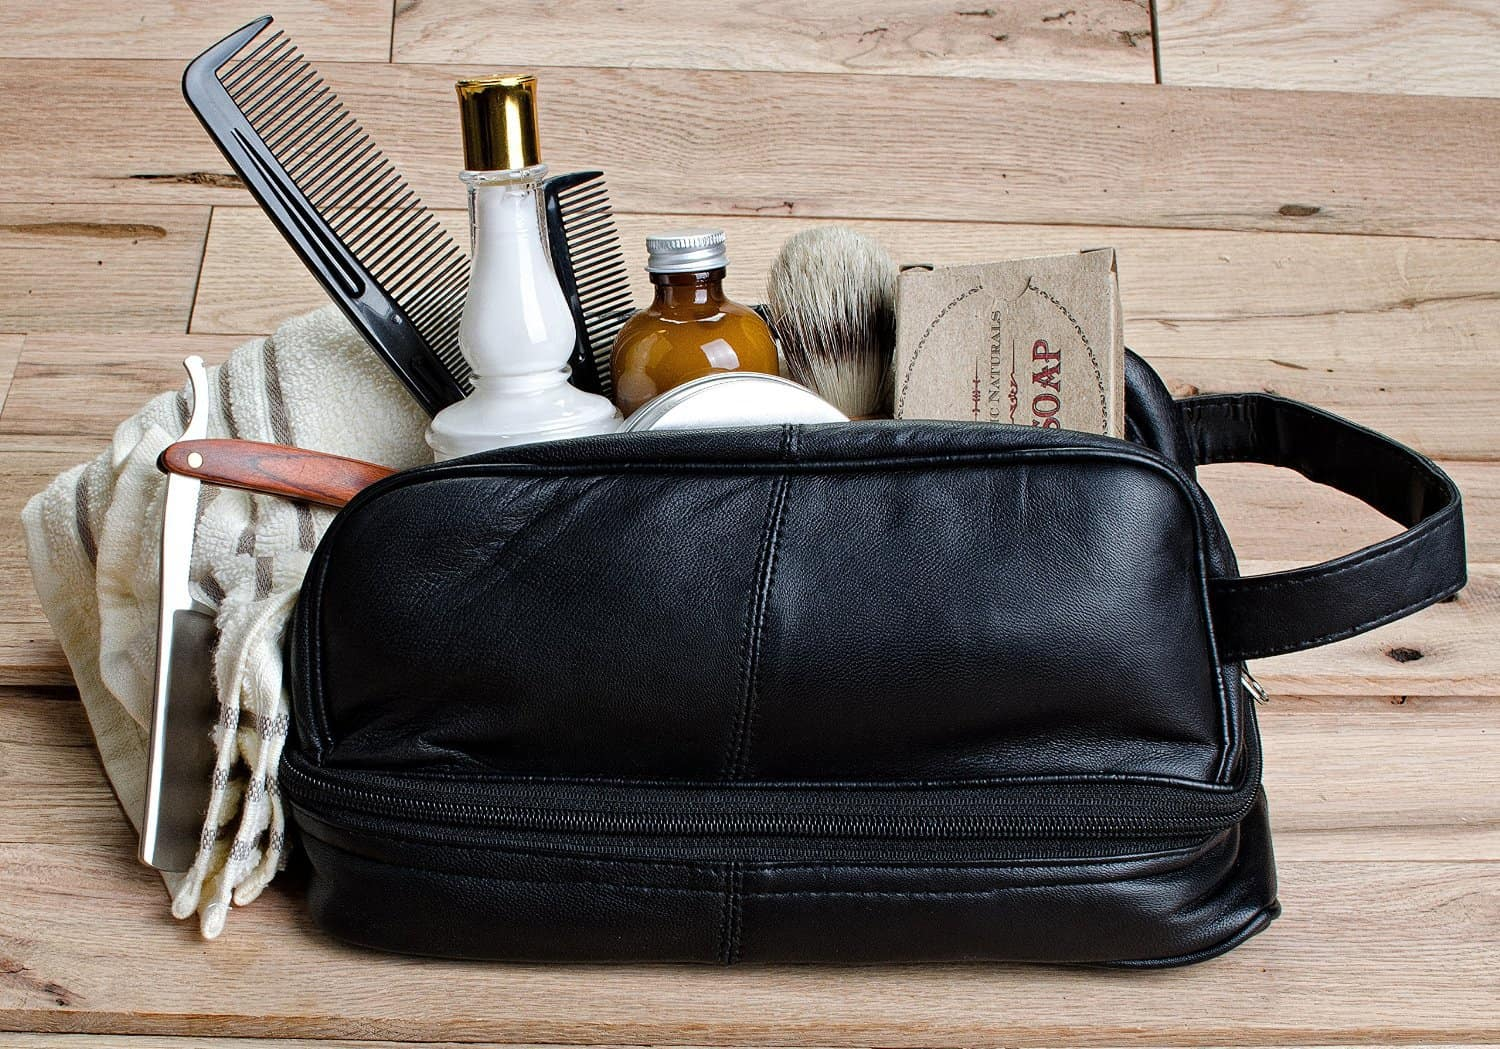 Three Great Ideas For The Perfect Men S Toiletry Bag Travel Shaving Kits Classic Leather Or Hanging Toiletry Bags